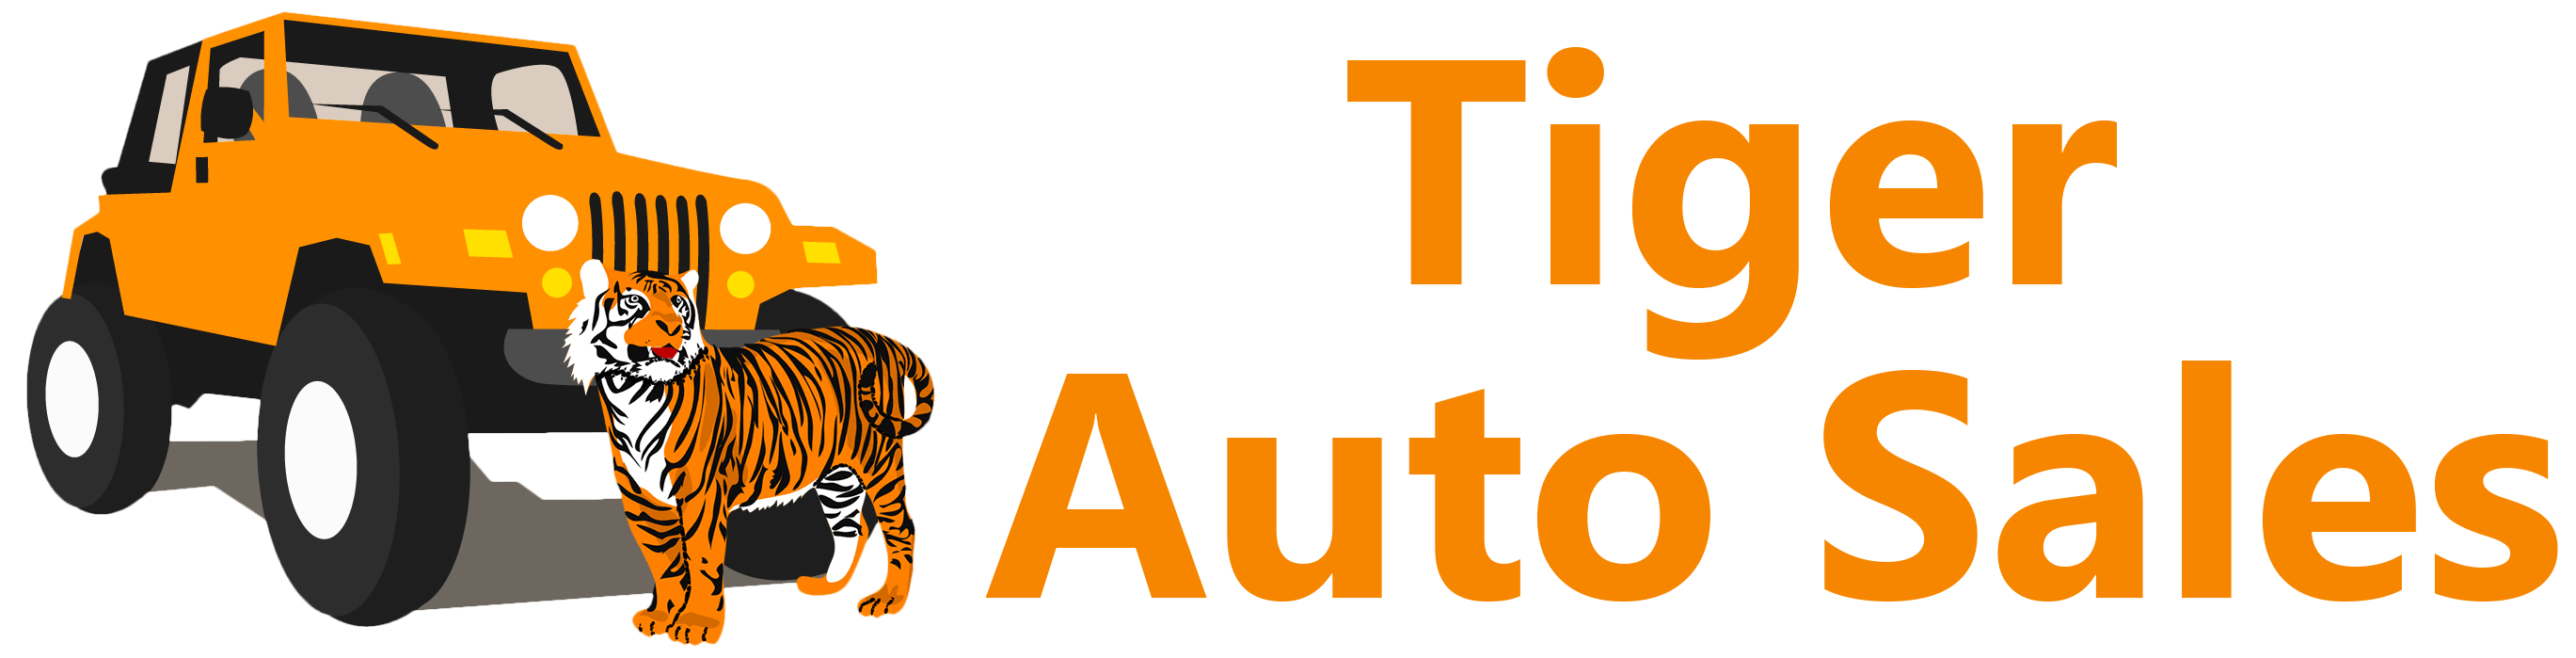 Tiger Auto Sales Great High Quality Used Cars In London